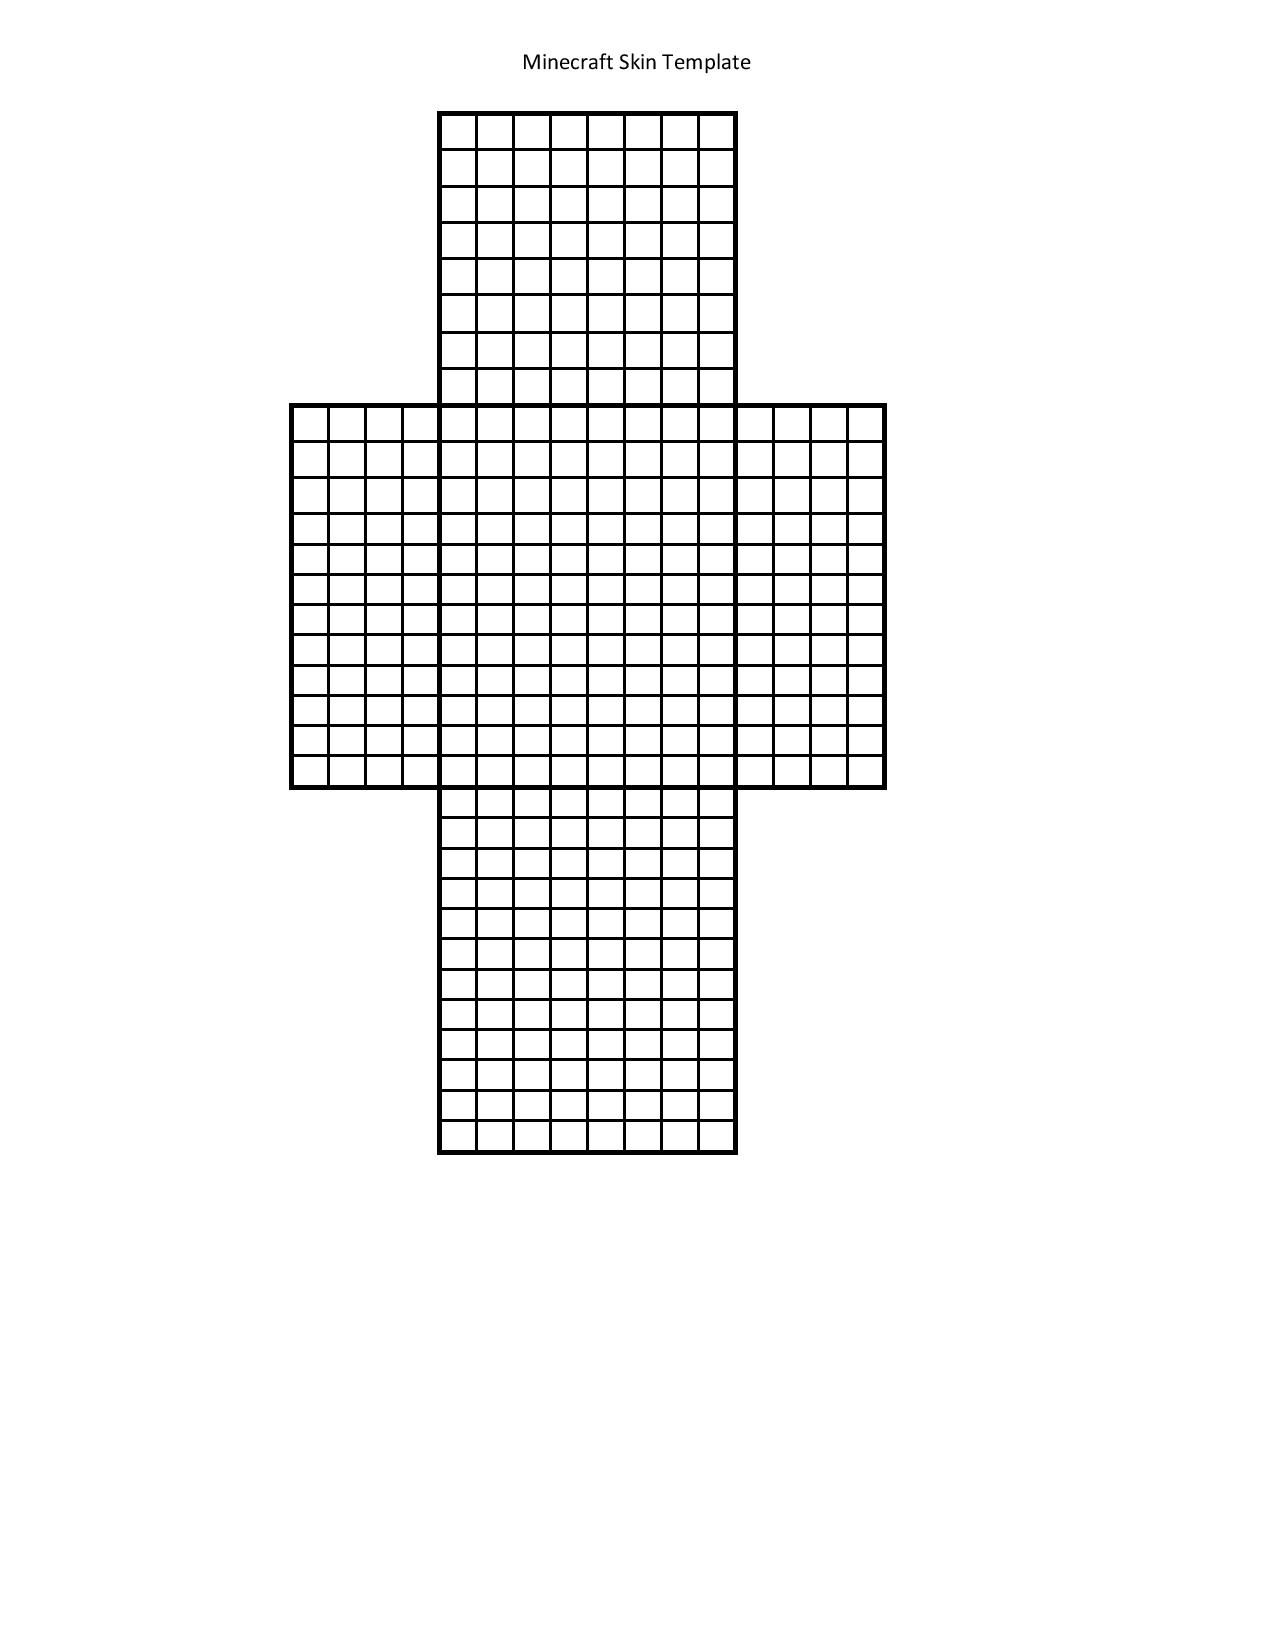 Printable template for minecraft skin creation use markers or printable template for minecraft skin creation use markers or colored pencils to plan a skin maxwellsz